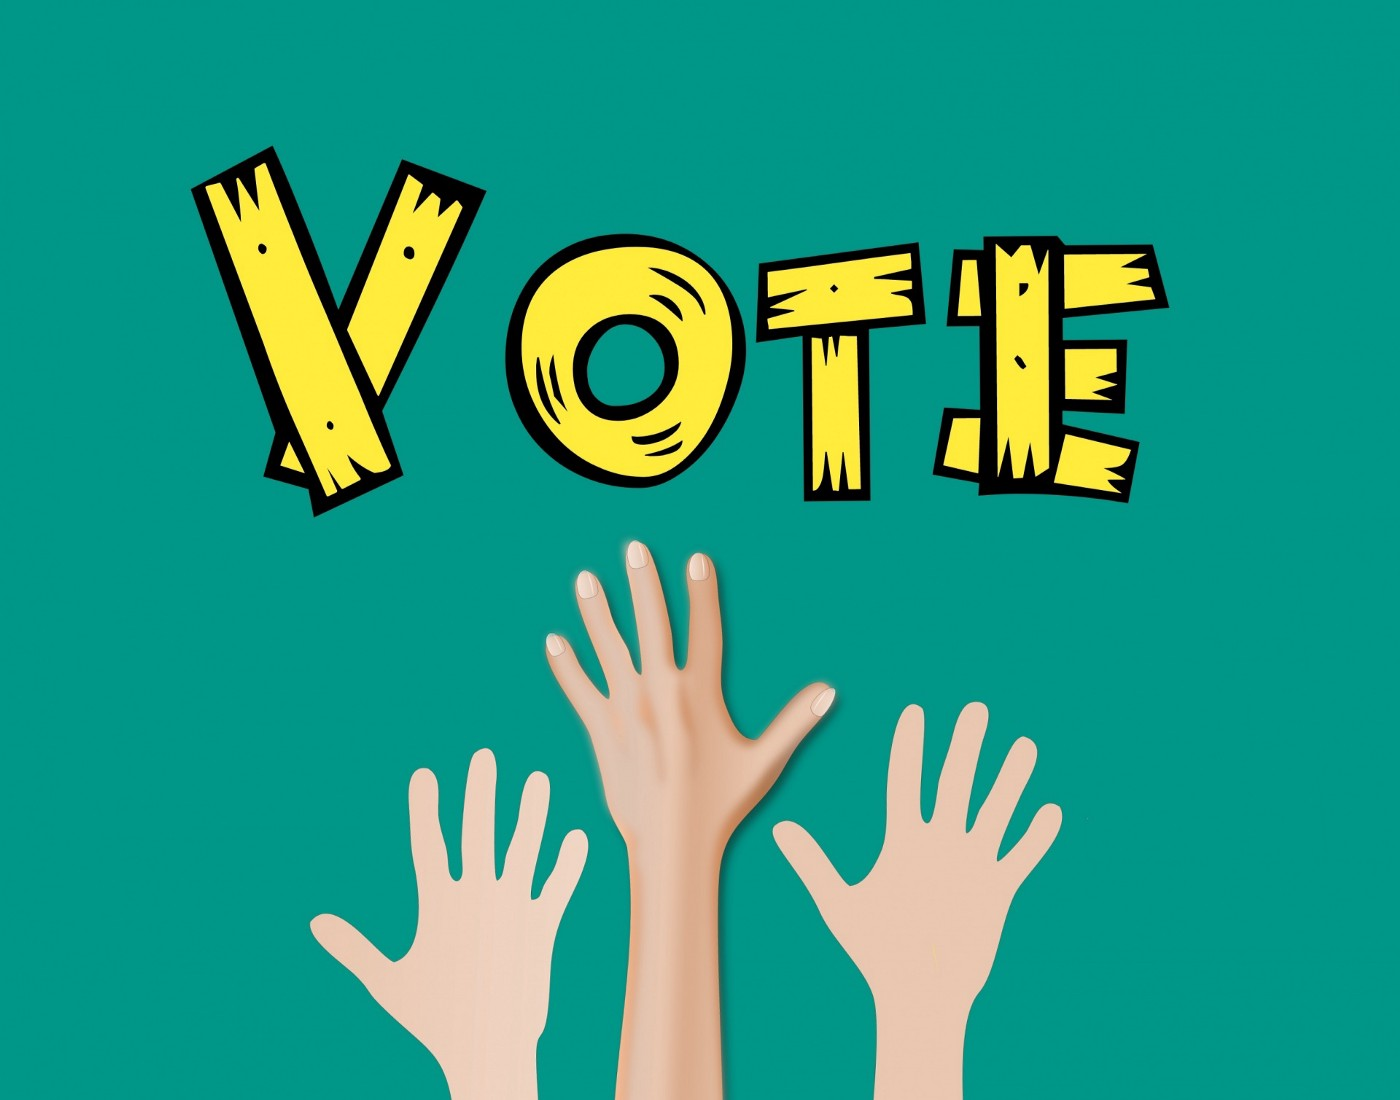 """Image of """"Vote"""" with three hands of different color shades reaching up toward it. Public domain image via Mohamed Hassan."""